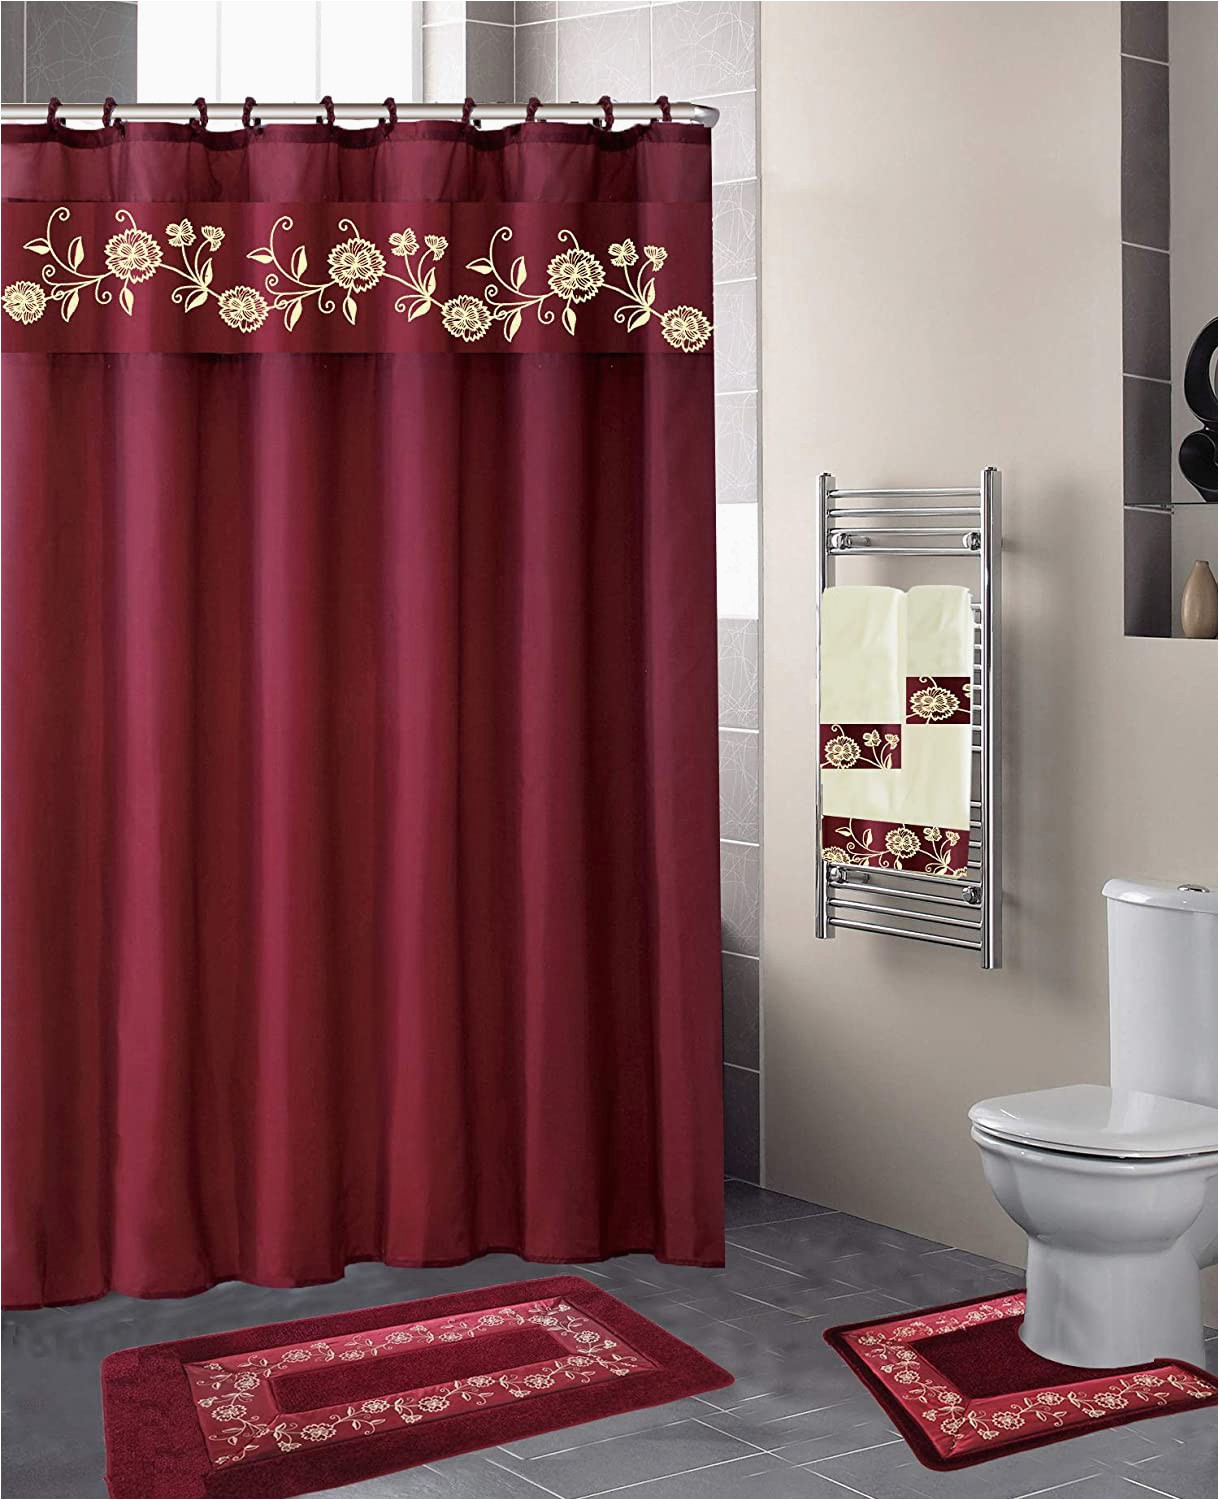 Luxury Bathroom Rug Sets Luxury Home Collection 18 Pc Bath Rug Set Embroidery Non Slip Bathroom Rug Mats and Rug Contour and Shower Curtain and towels and Rings Hooks and